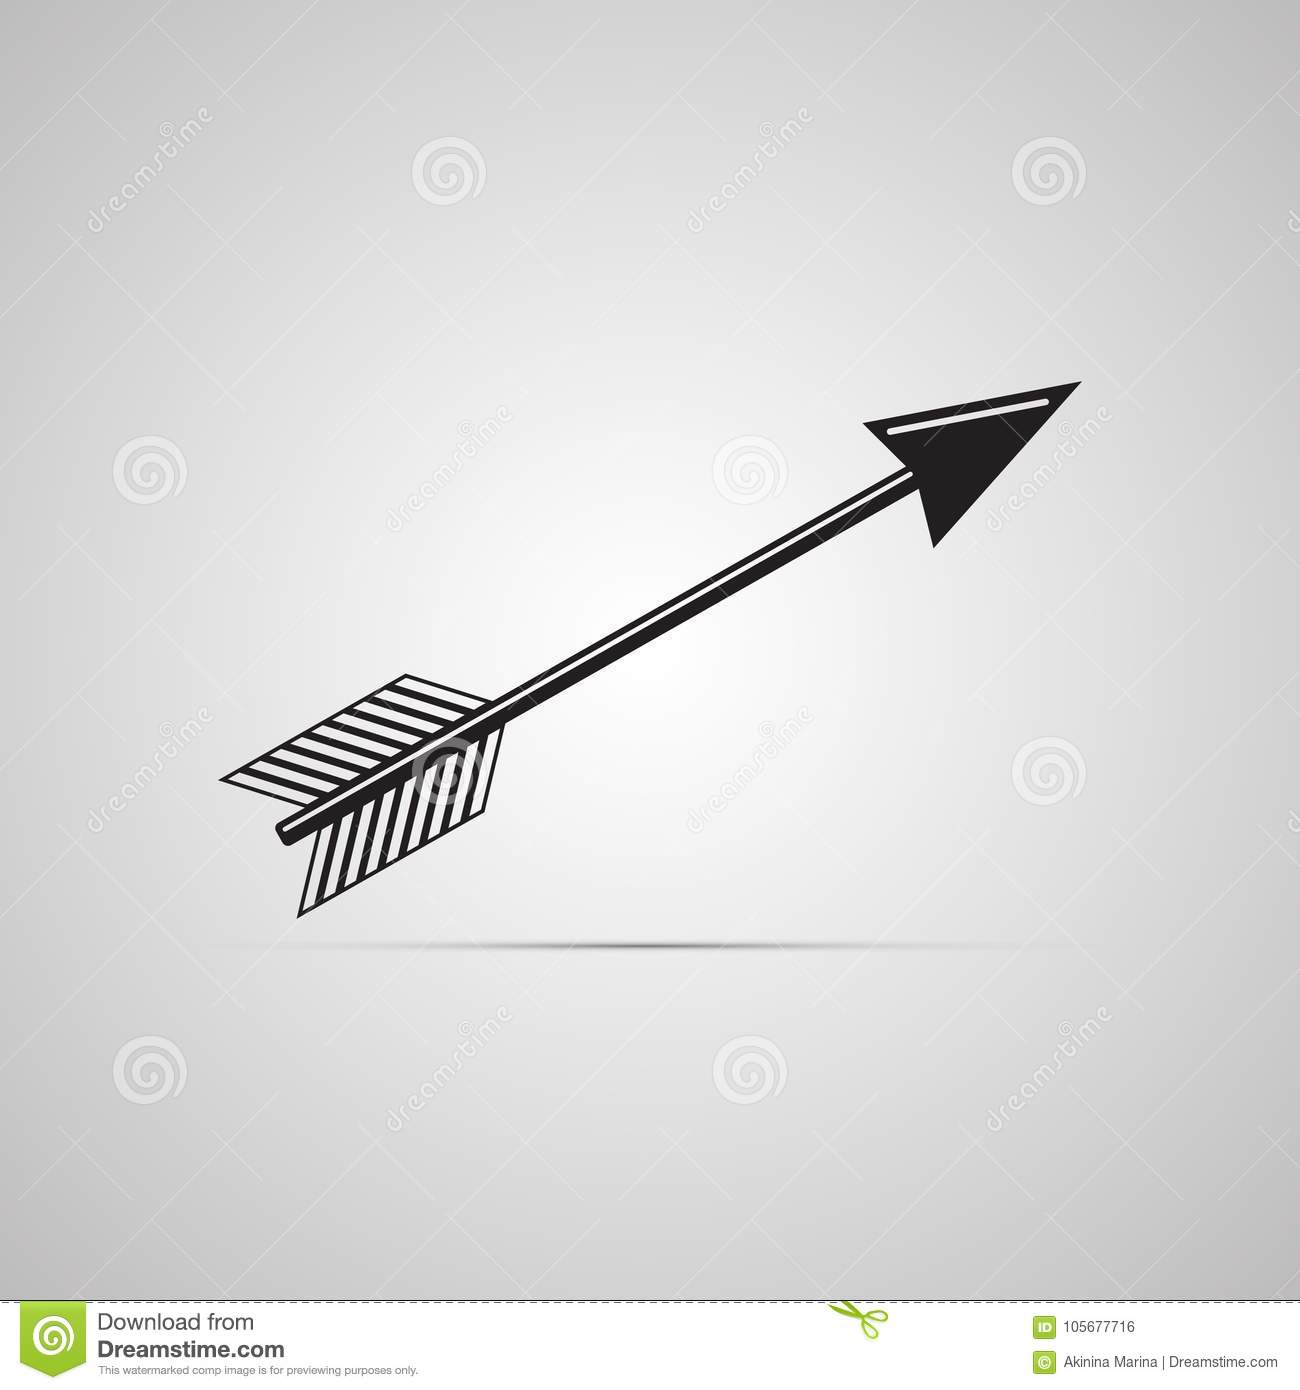 Silhouette flat icon, simple vector design with shadow. Arrow illustration for darts and arbalest